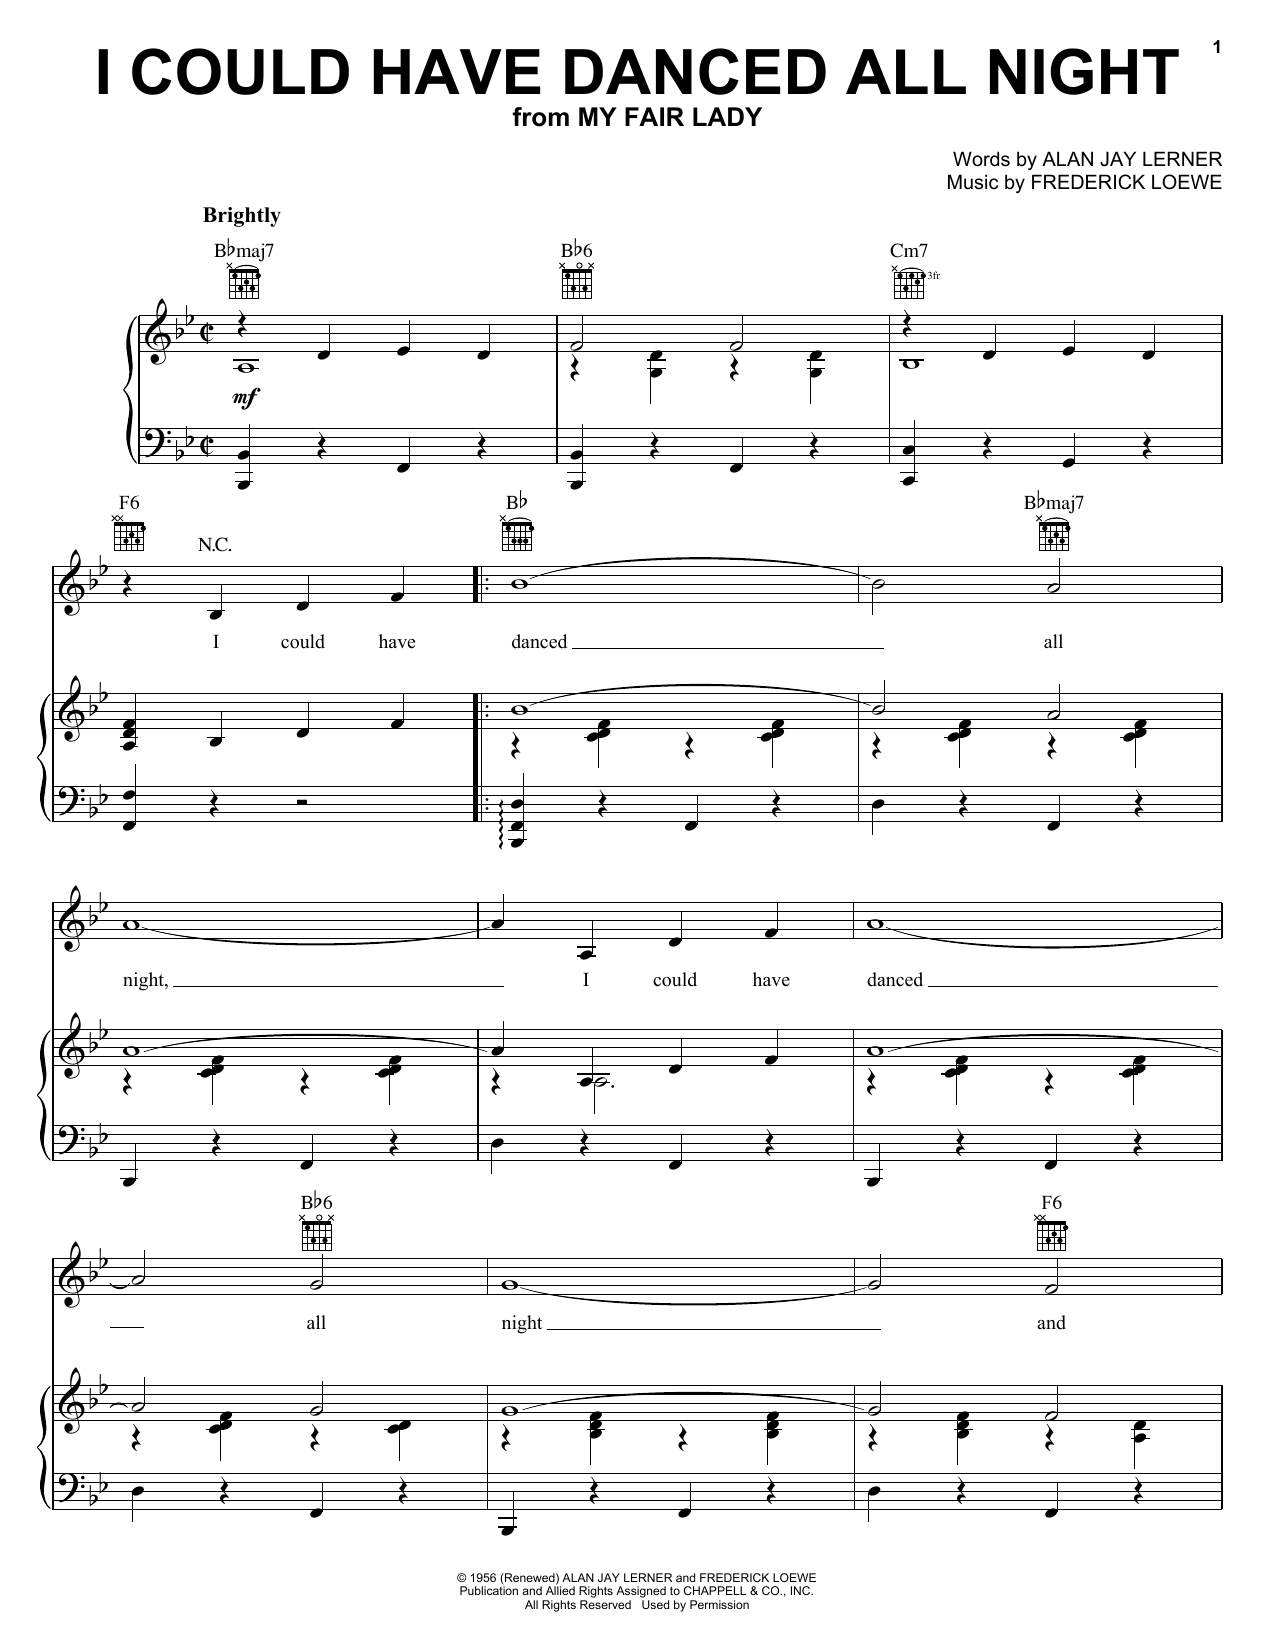 Lerner & Loewe I Could Have Danced All Night sheet music notes and chords